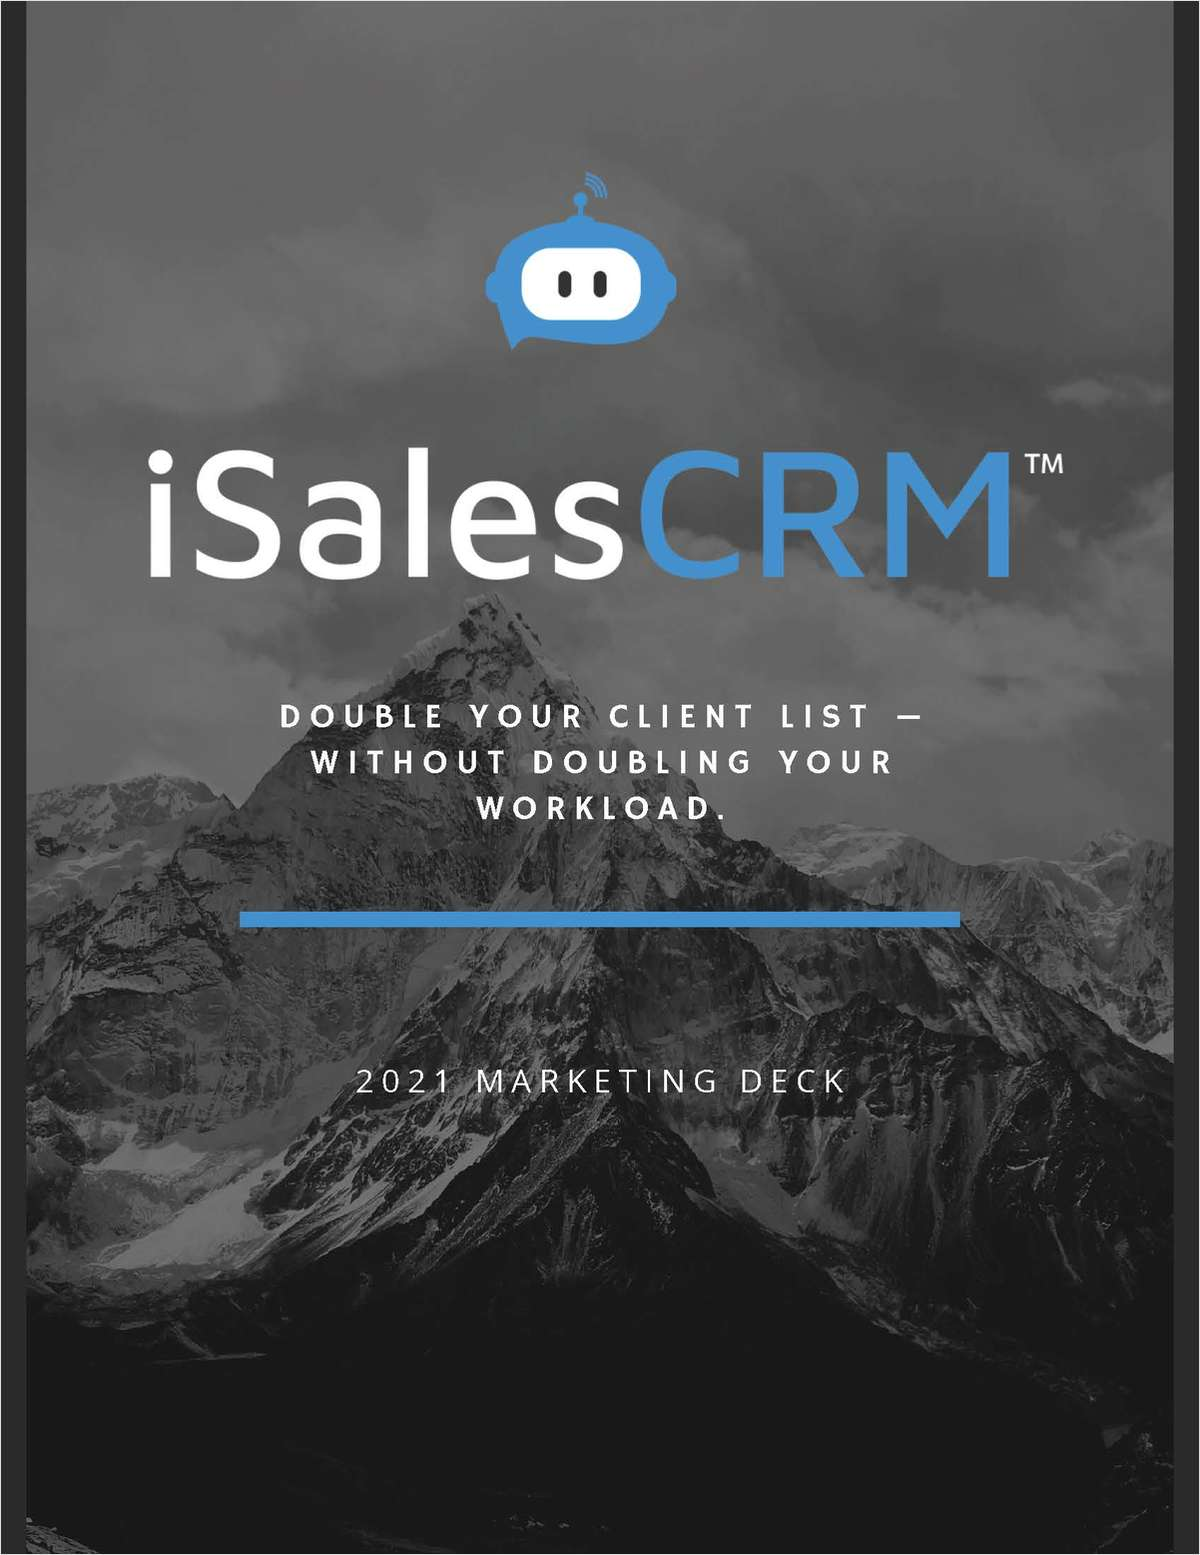 iSalesCRM -- Automated Sales Follow-Up